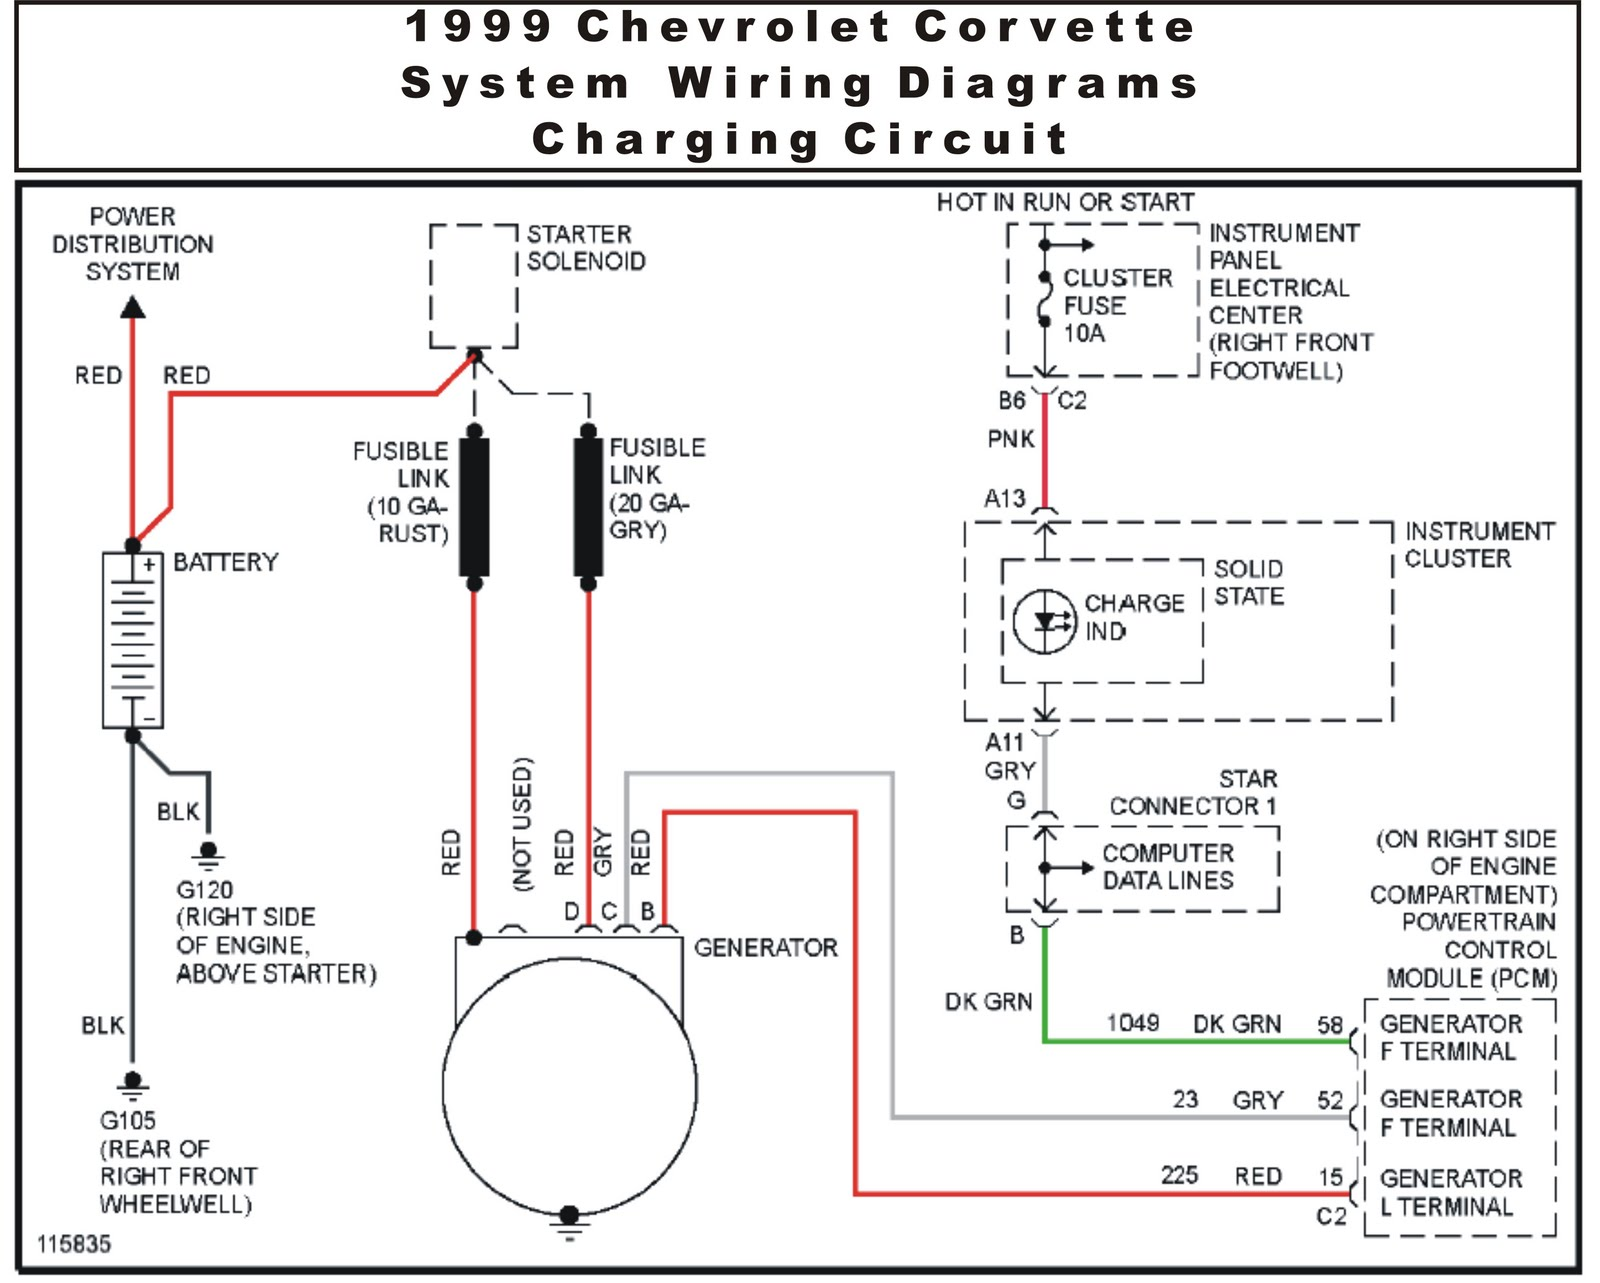 2011 schematic wiring diagrams solutions 1999 chevrolet corvette system wiring diagrams charging circuit